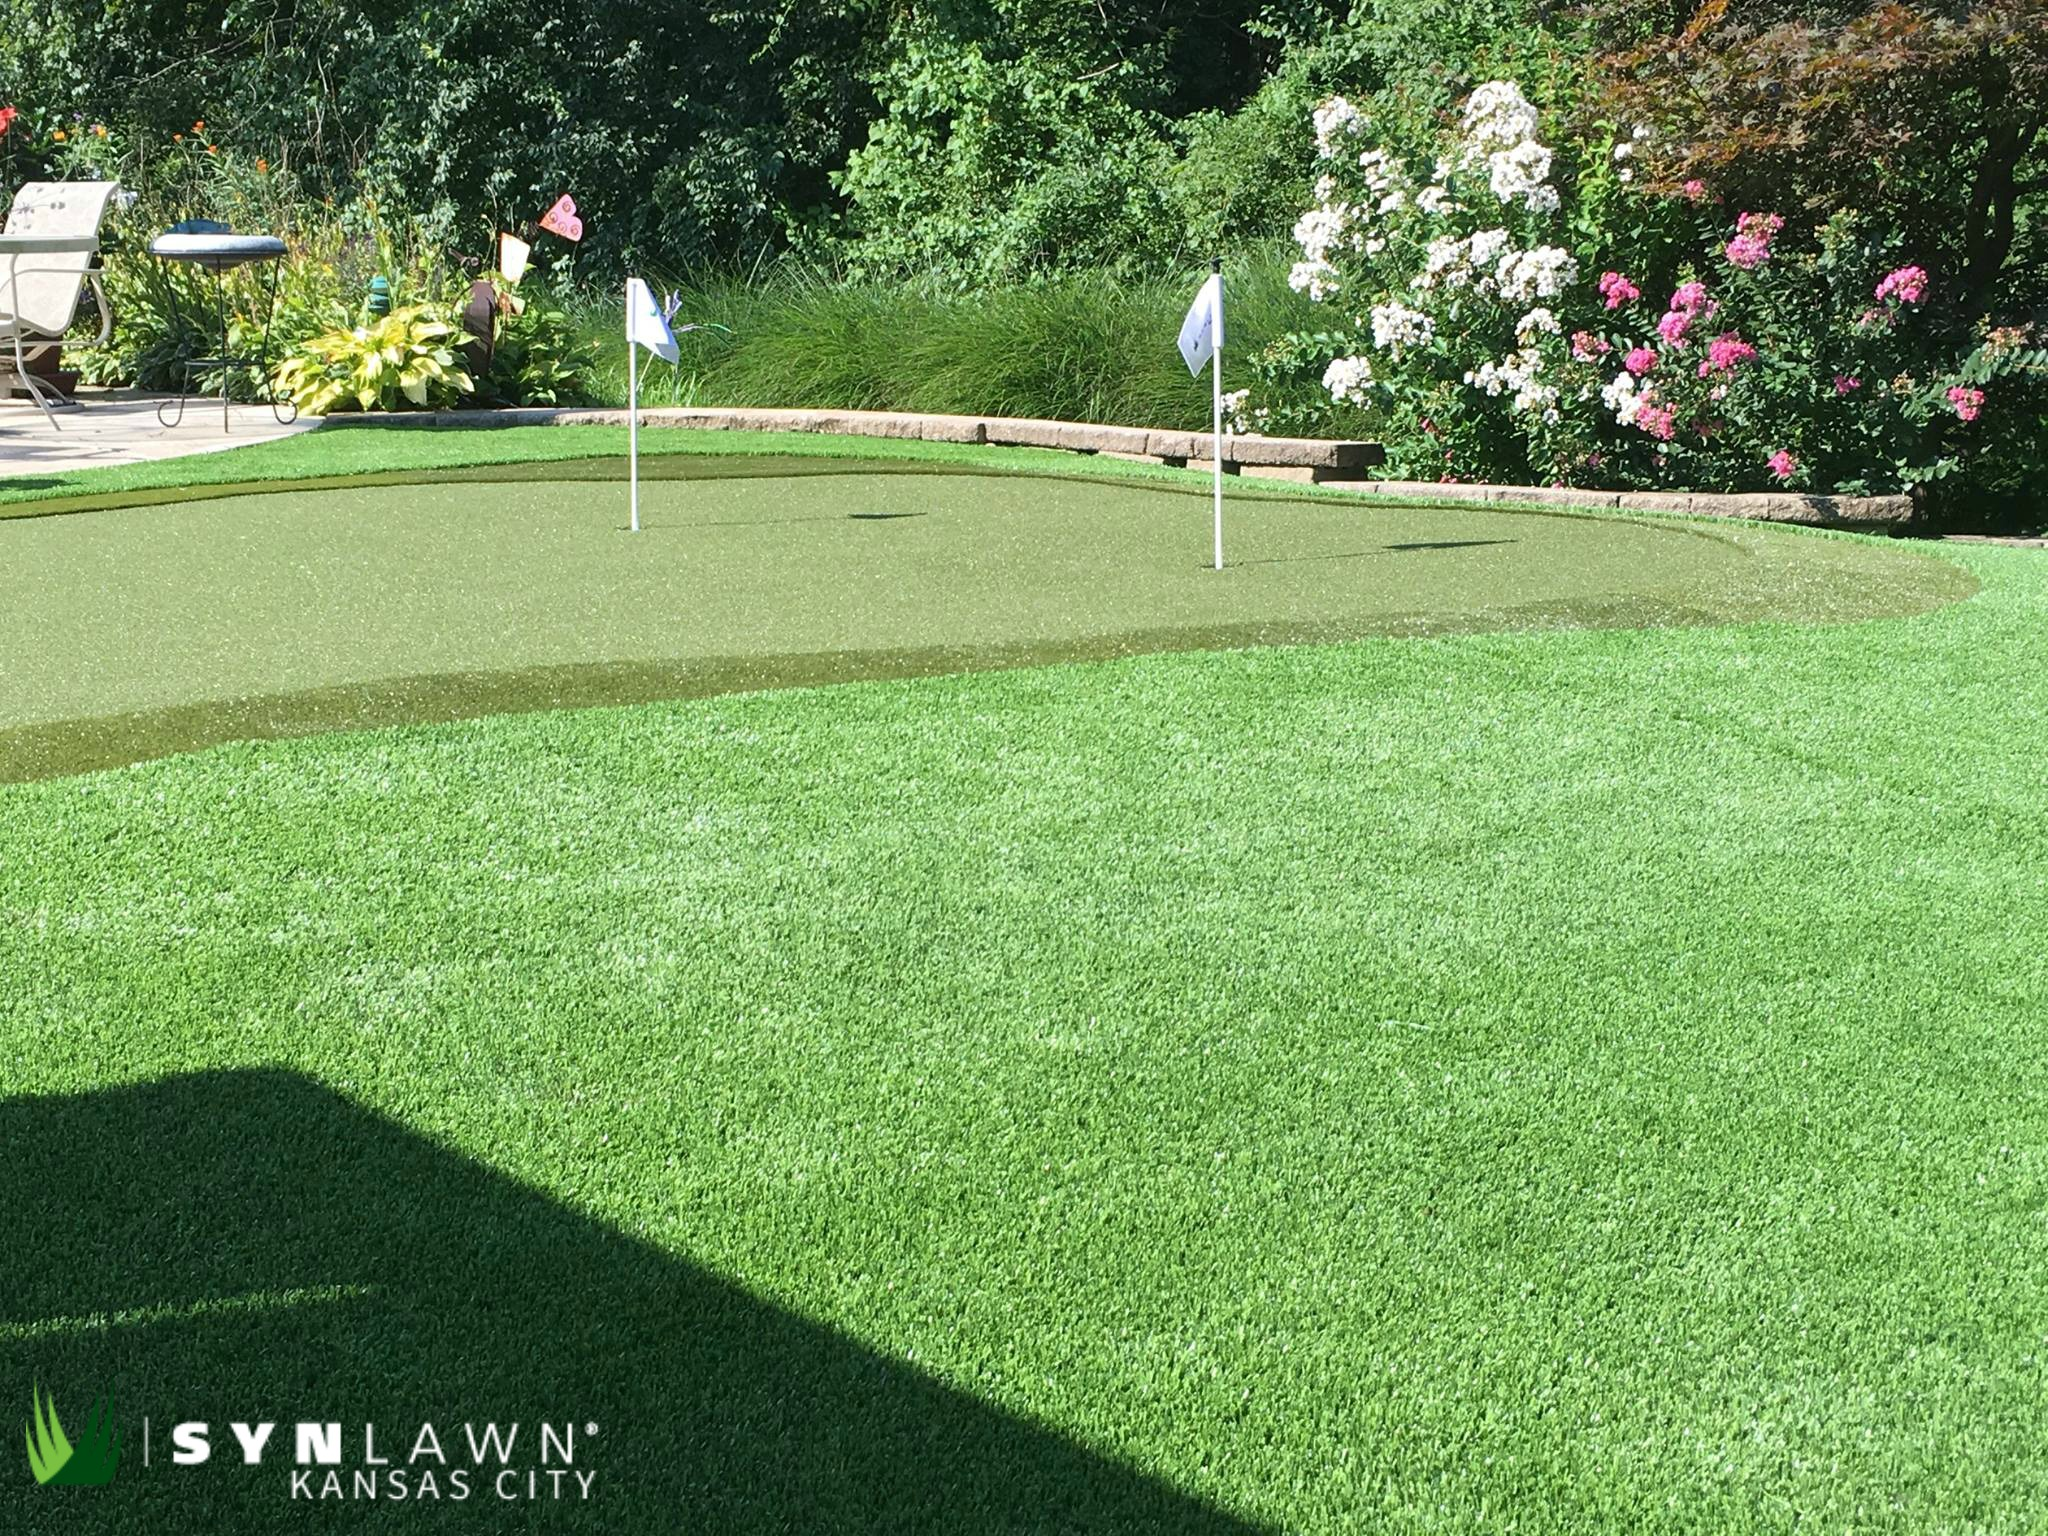 A wide-shot of a synthetic grass putting green with blooming flowers in the background.